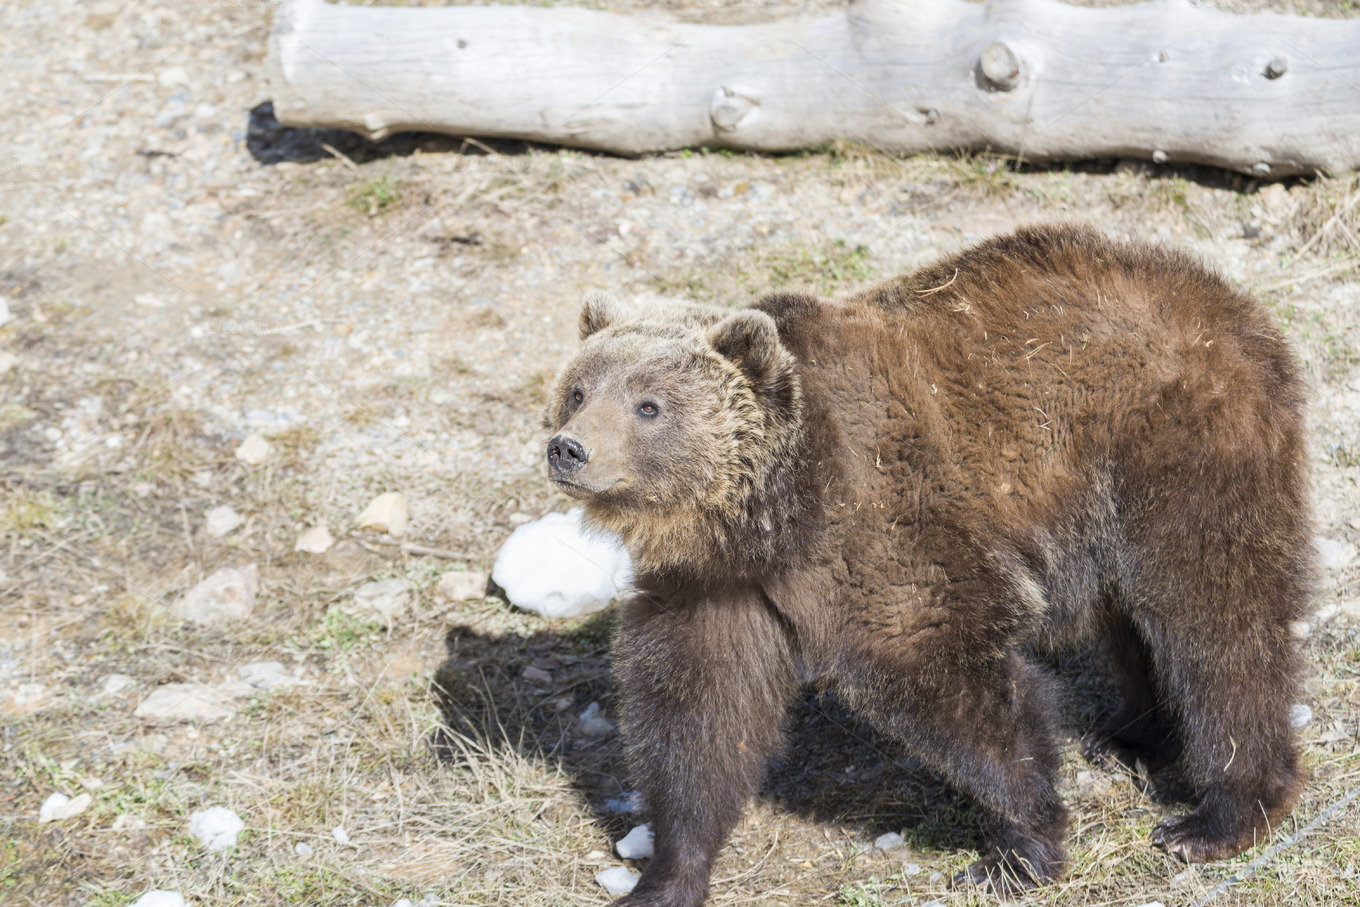 Grizzly in the Water with a Watermelon : hardcoreaww  |Brown Bear Food